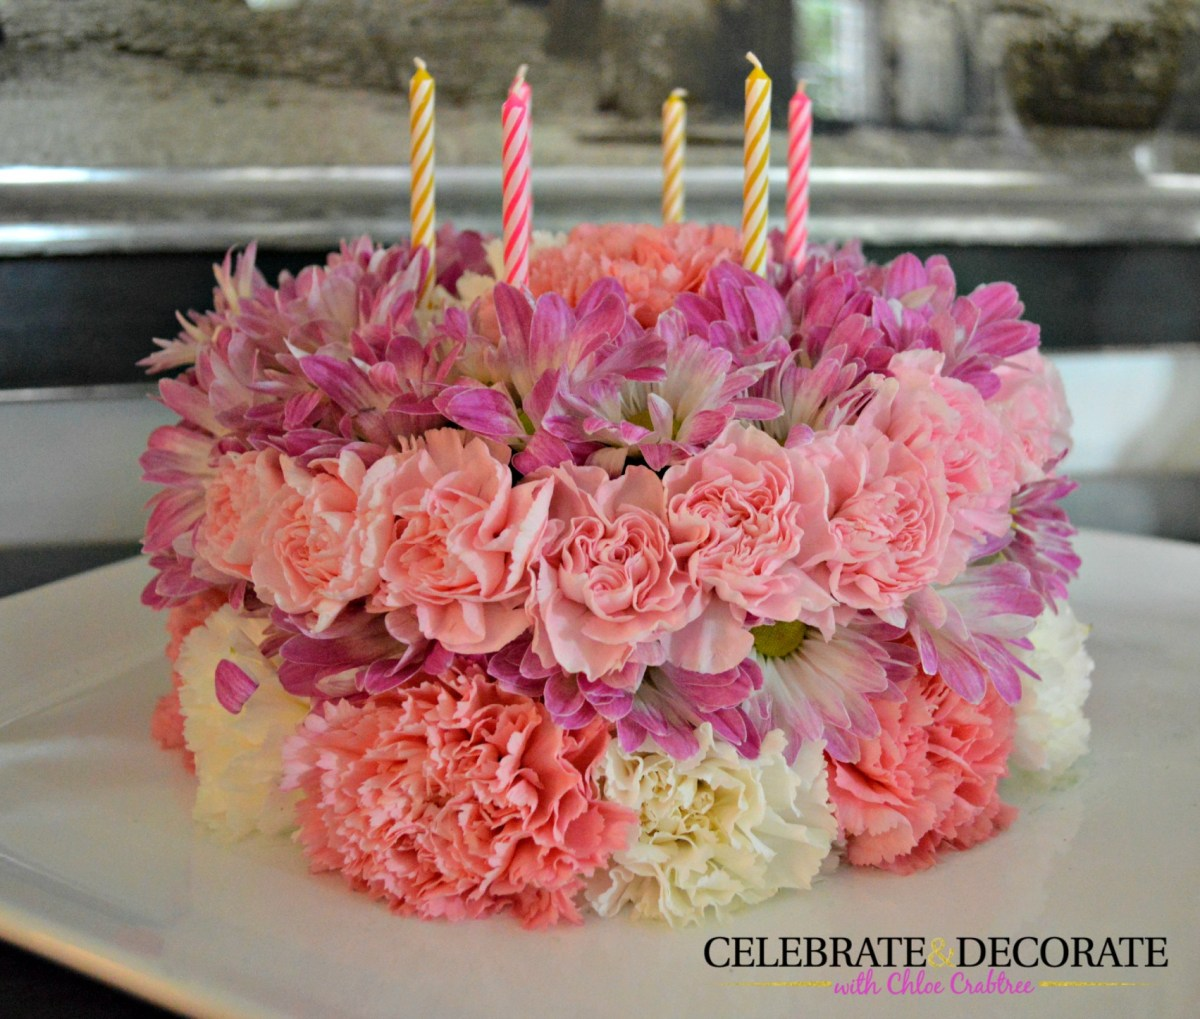 How To Make Birthday Cake How To Make A Floral Birthday Cake Celebrate Decorate